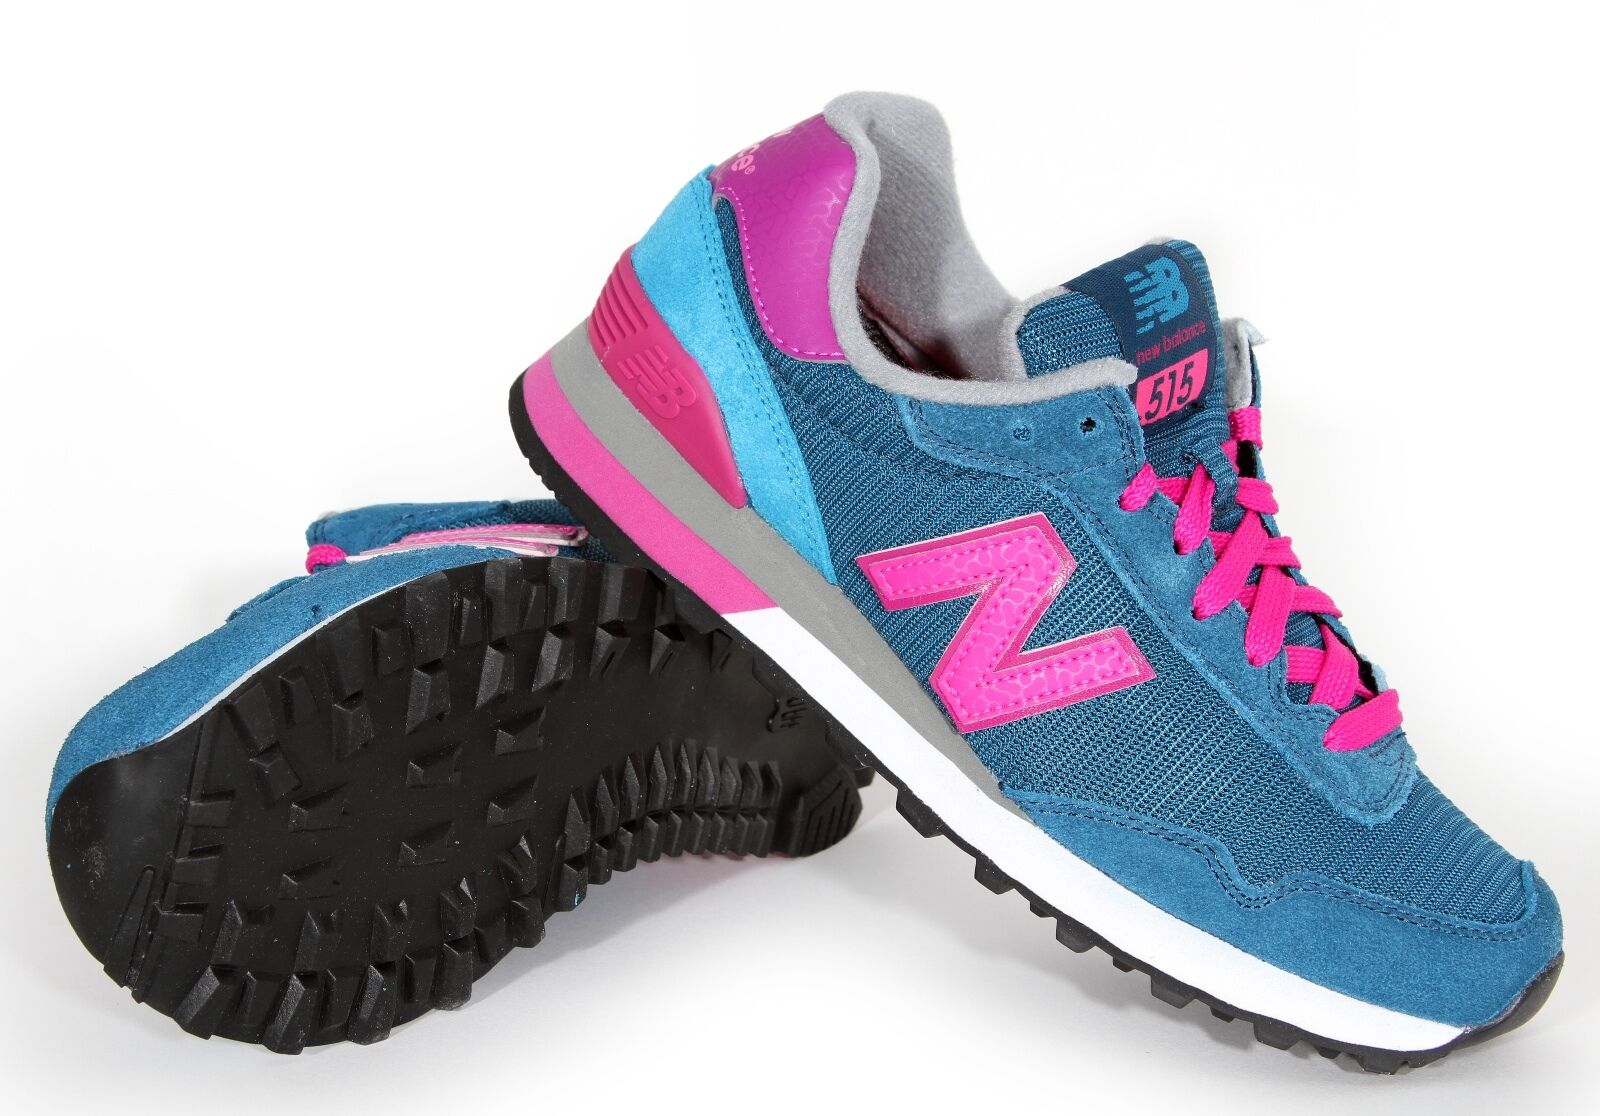 New Balance Women's 515 Sneakers WL515BP New With Box Authentic